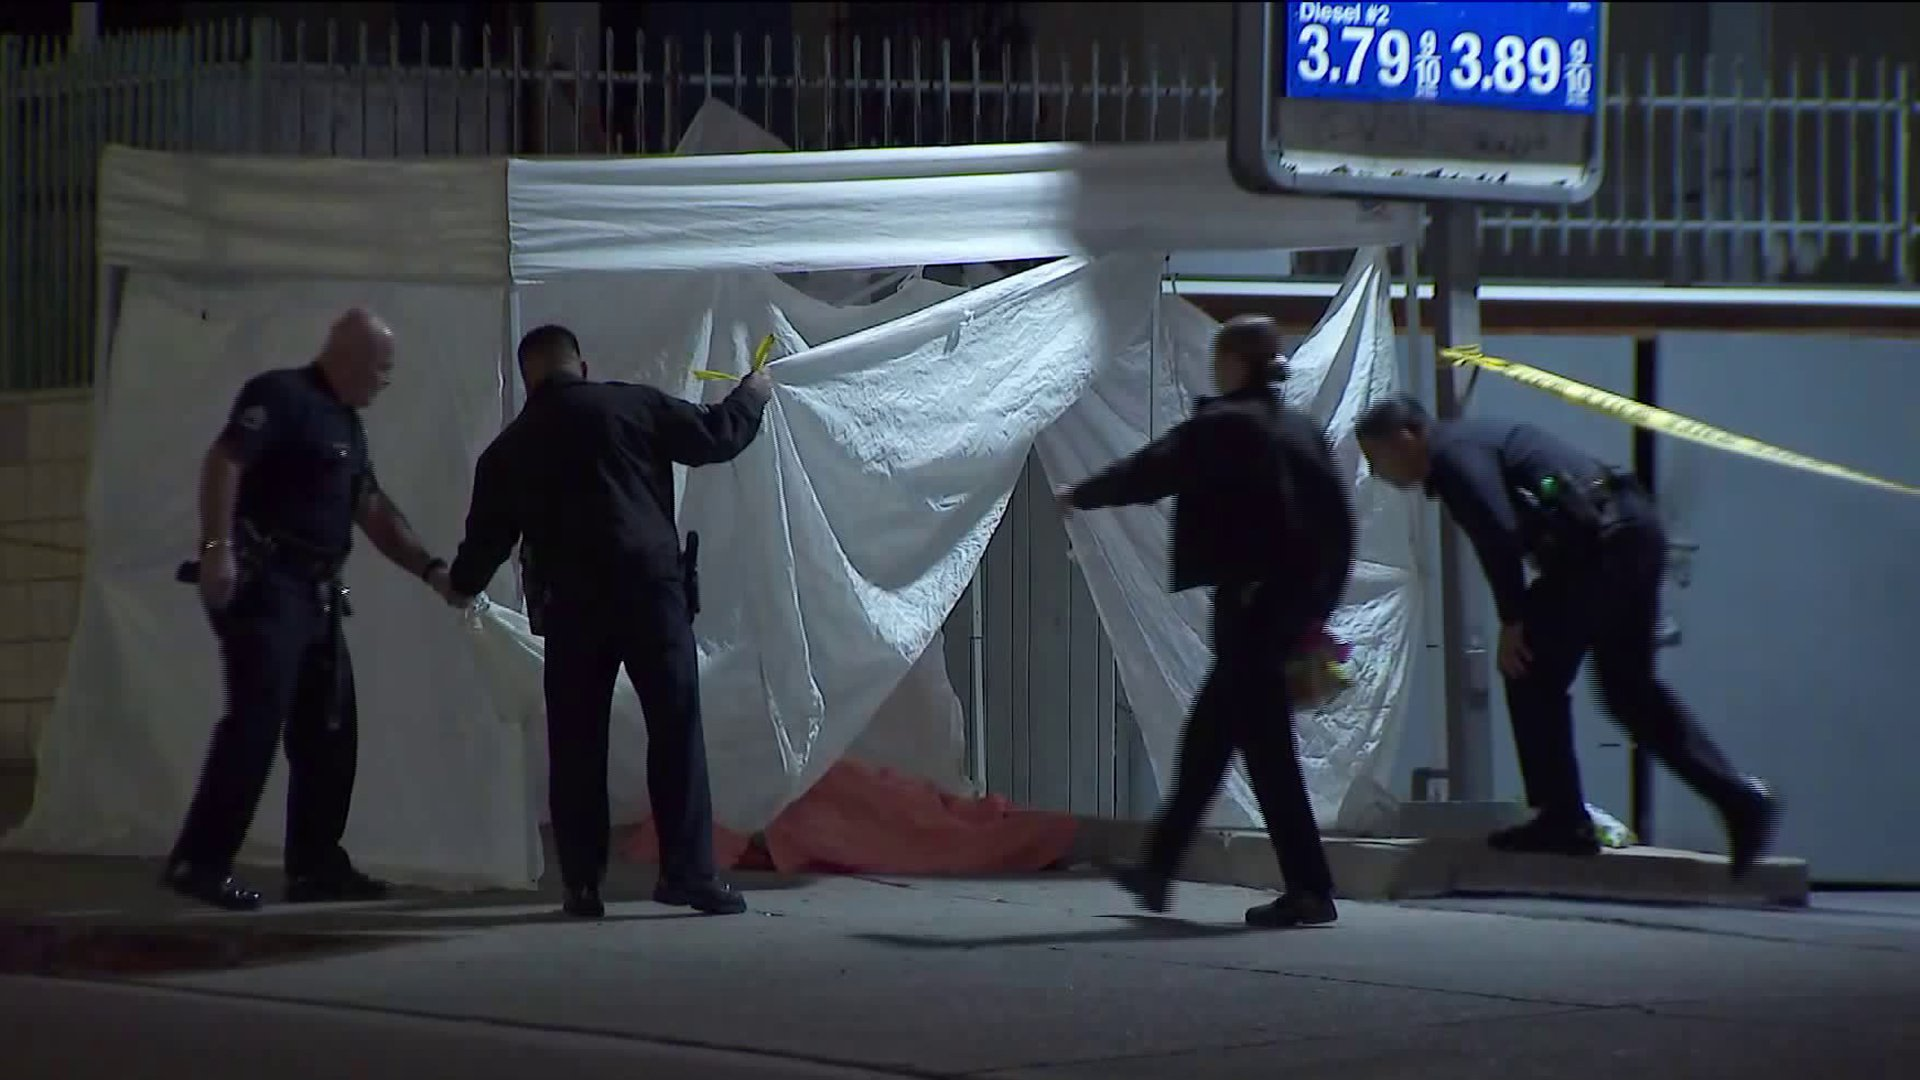 Los Angeles police respond to investigate a deadly shooting in the Pico-Union neighborhood on Jan. 6, 2020. (Credit: KTLA)